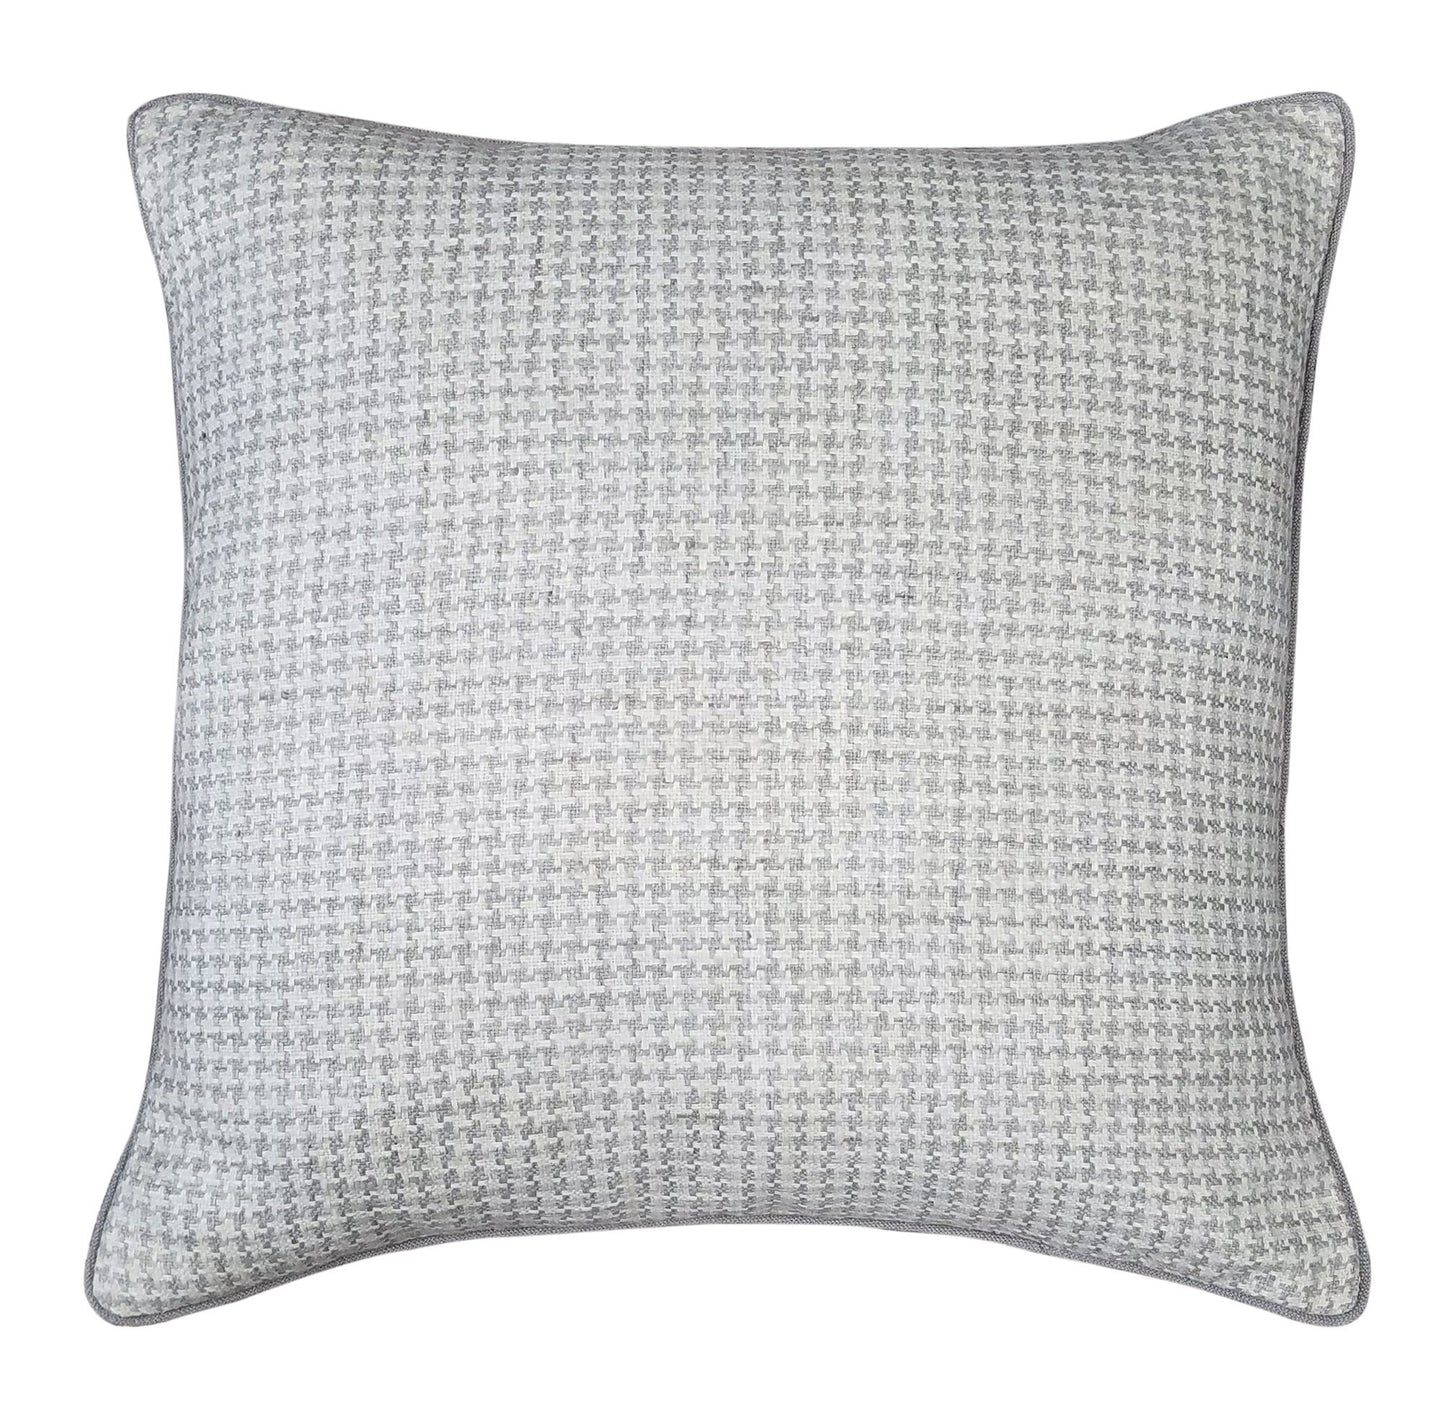 Graham Houndstooth Decorative Pillow